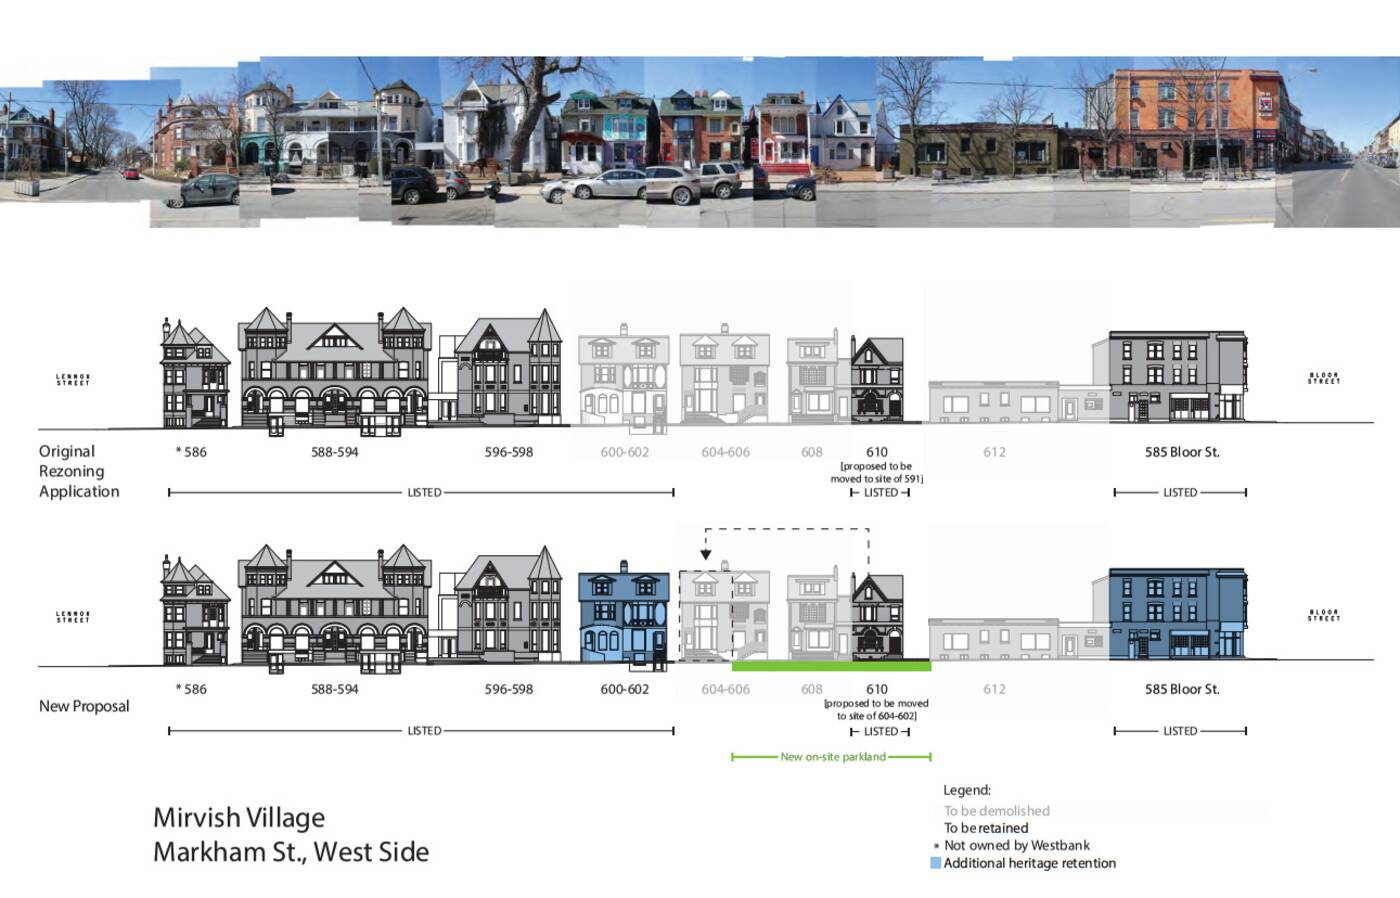 mirvish village redevelopment